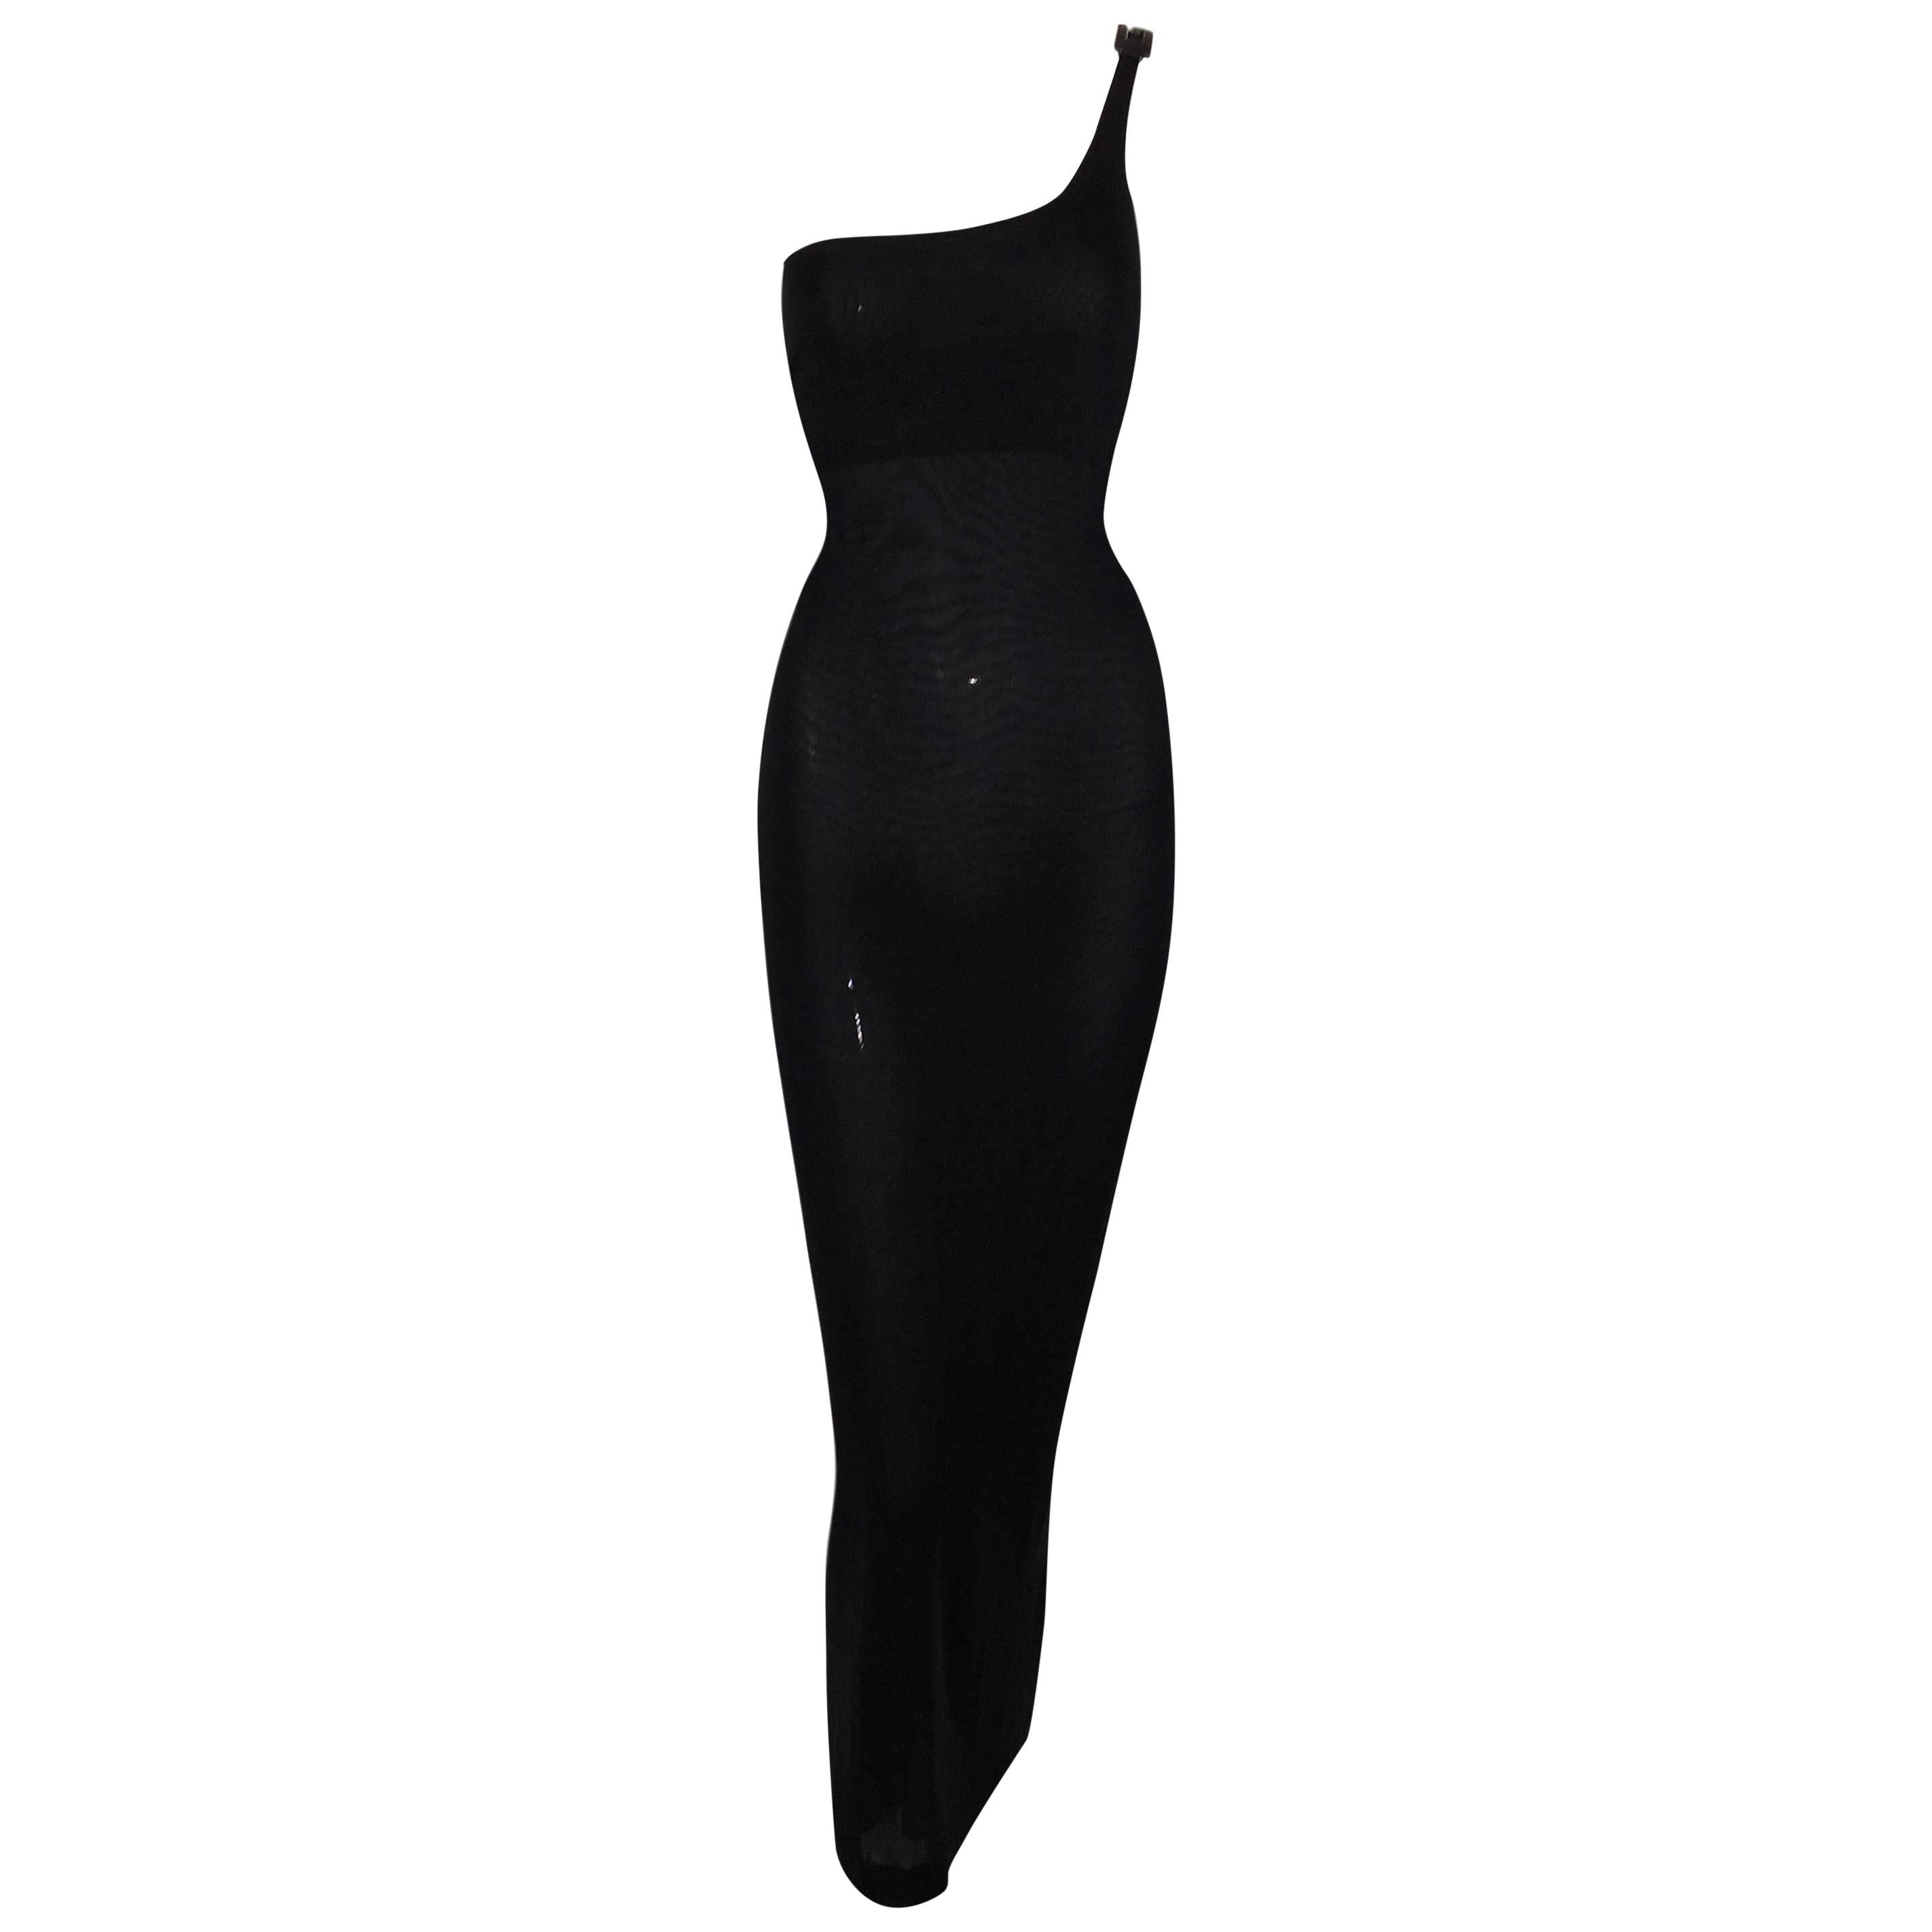 1998 Gucci by Tom Ford Black One Shoulder Crystal G Gown Dress